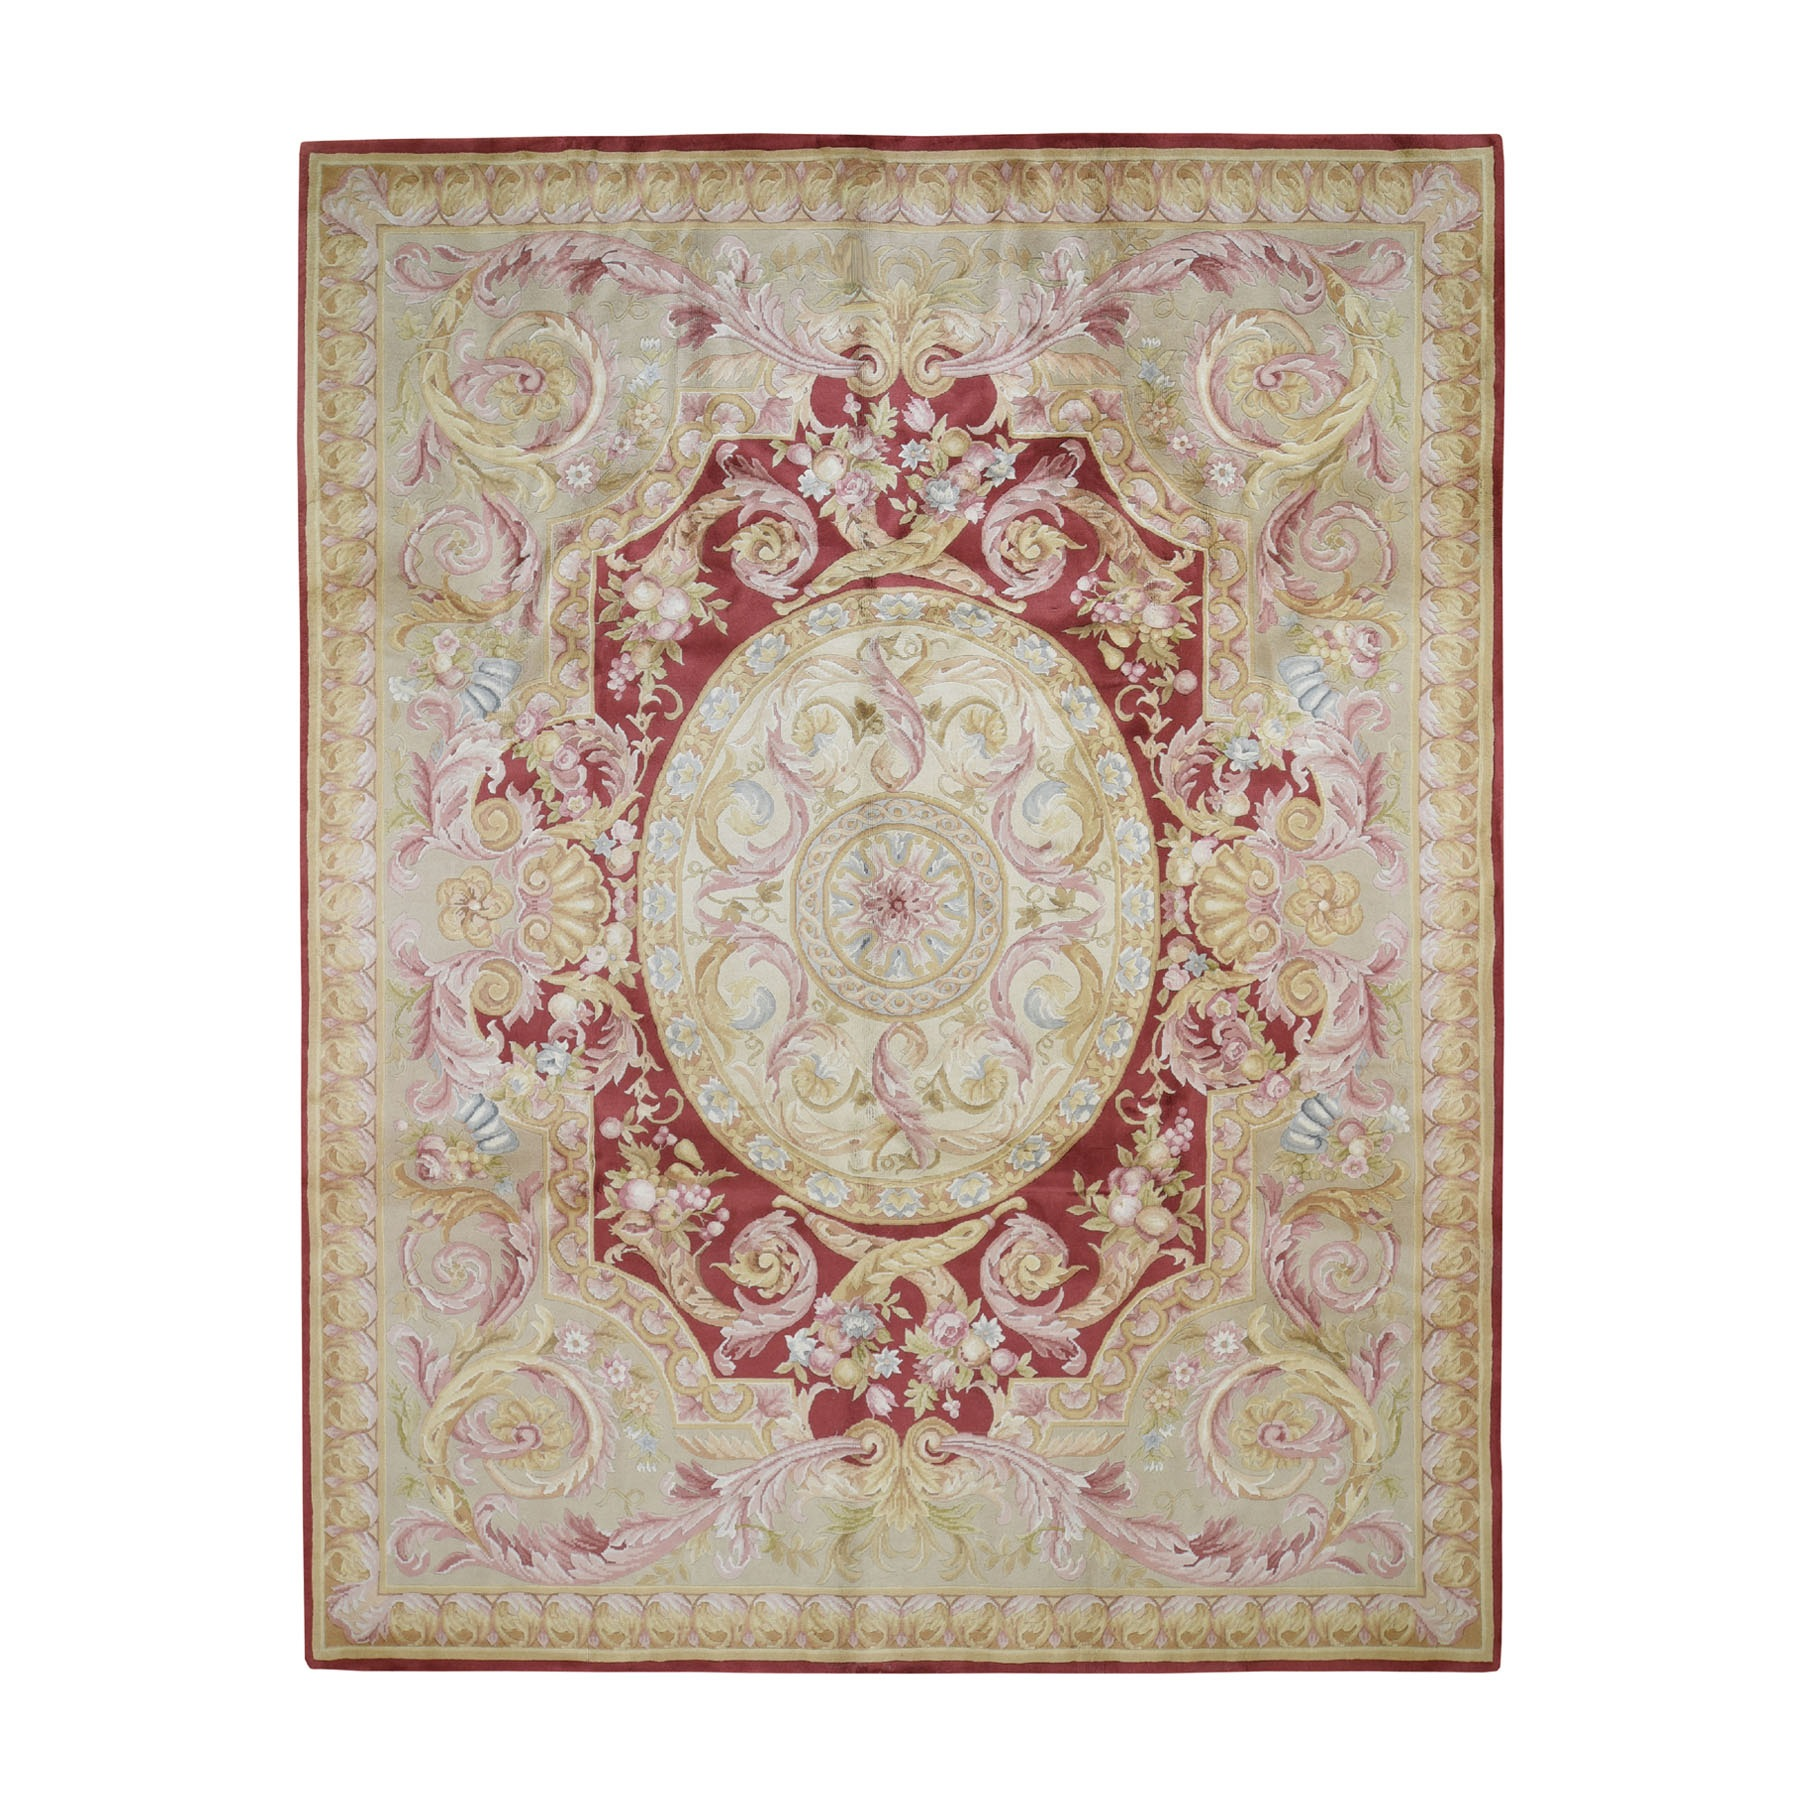 8'x10' Hand Woven Thick And Plush Savonnerie Napoleon III Design Oriental Rug